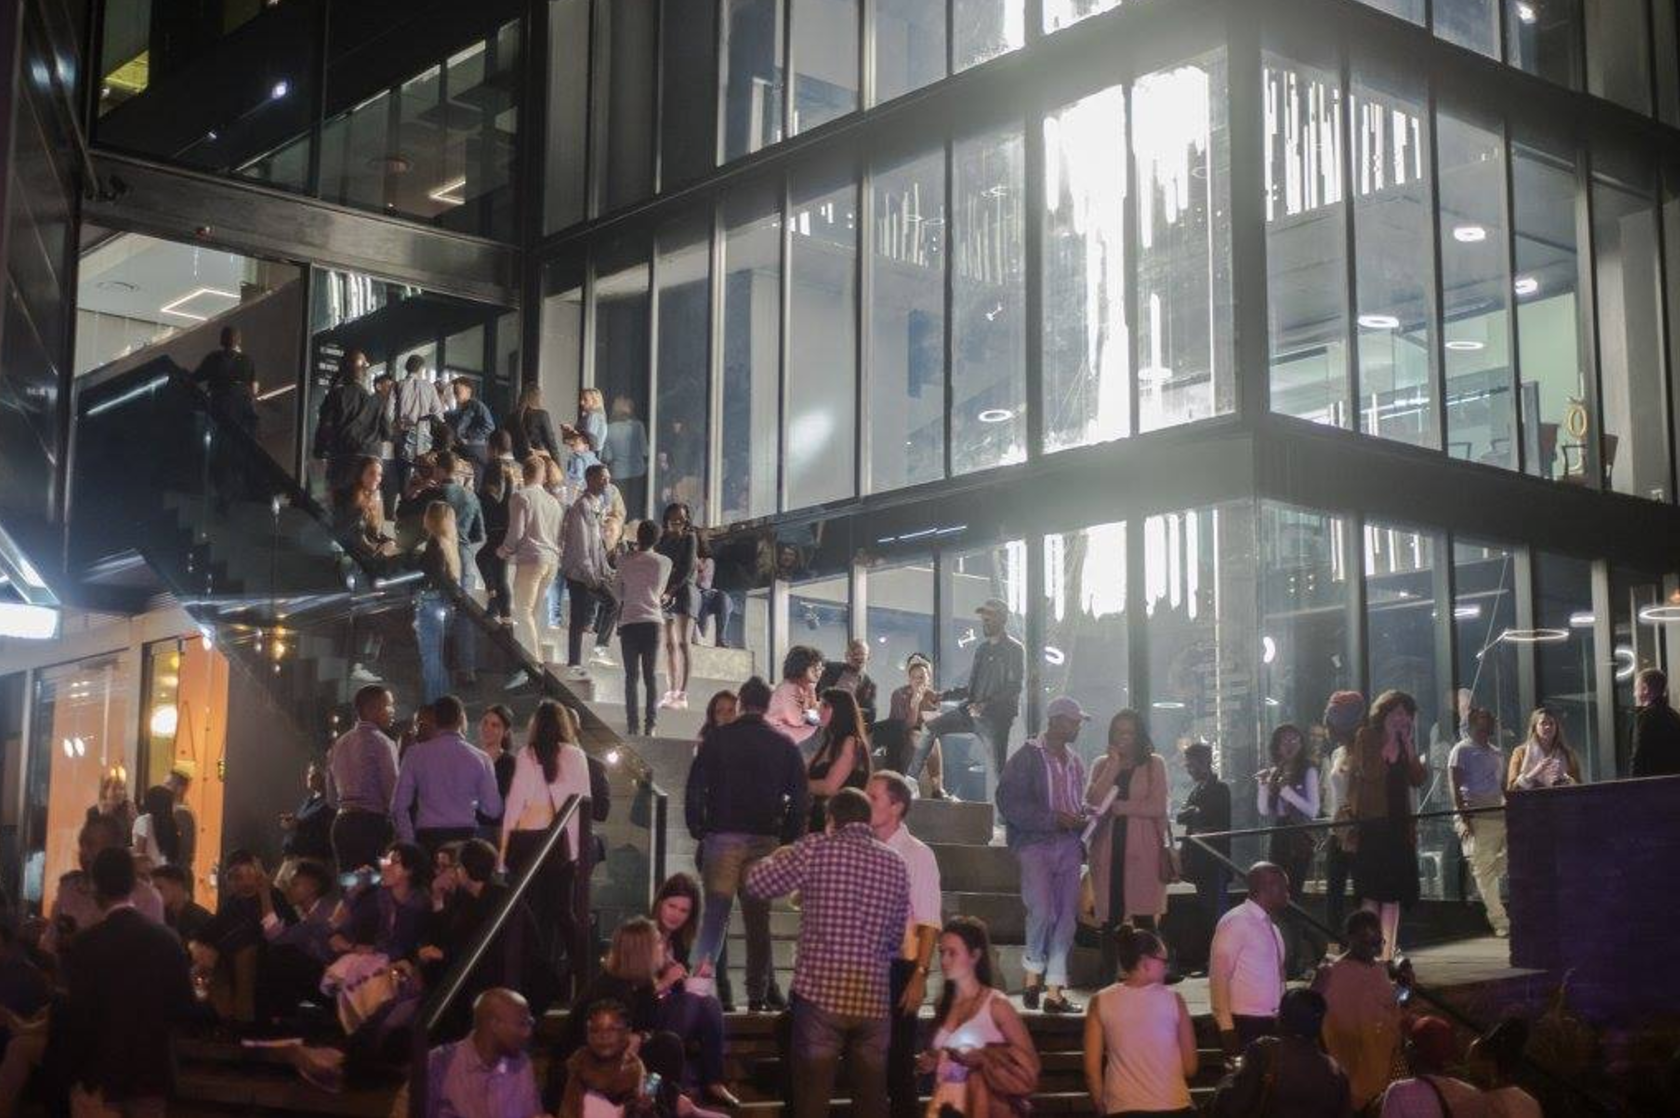 First Thursdays Rosebank takes place on the first Thursday of every month